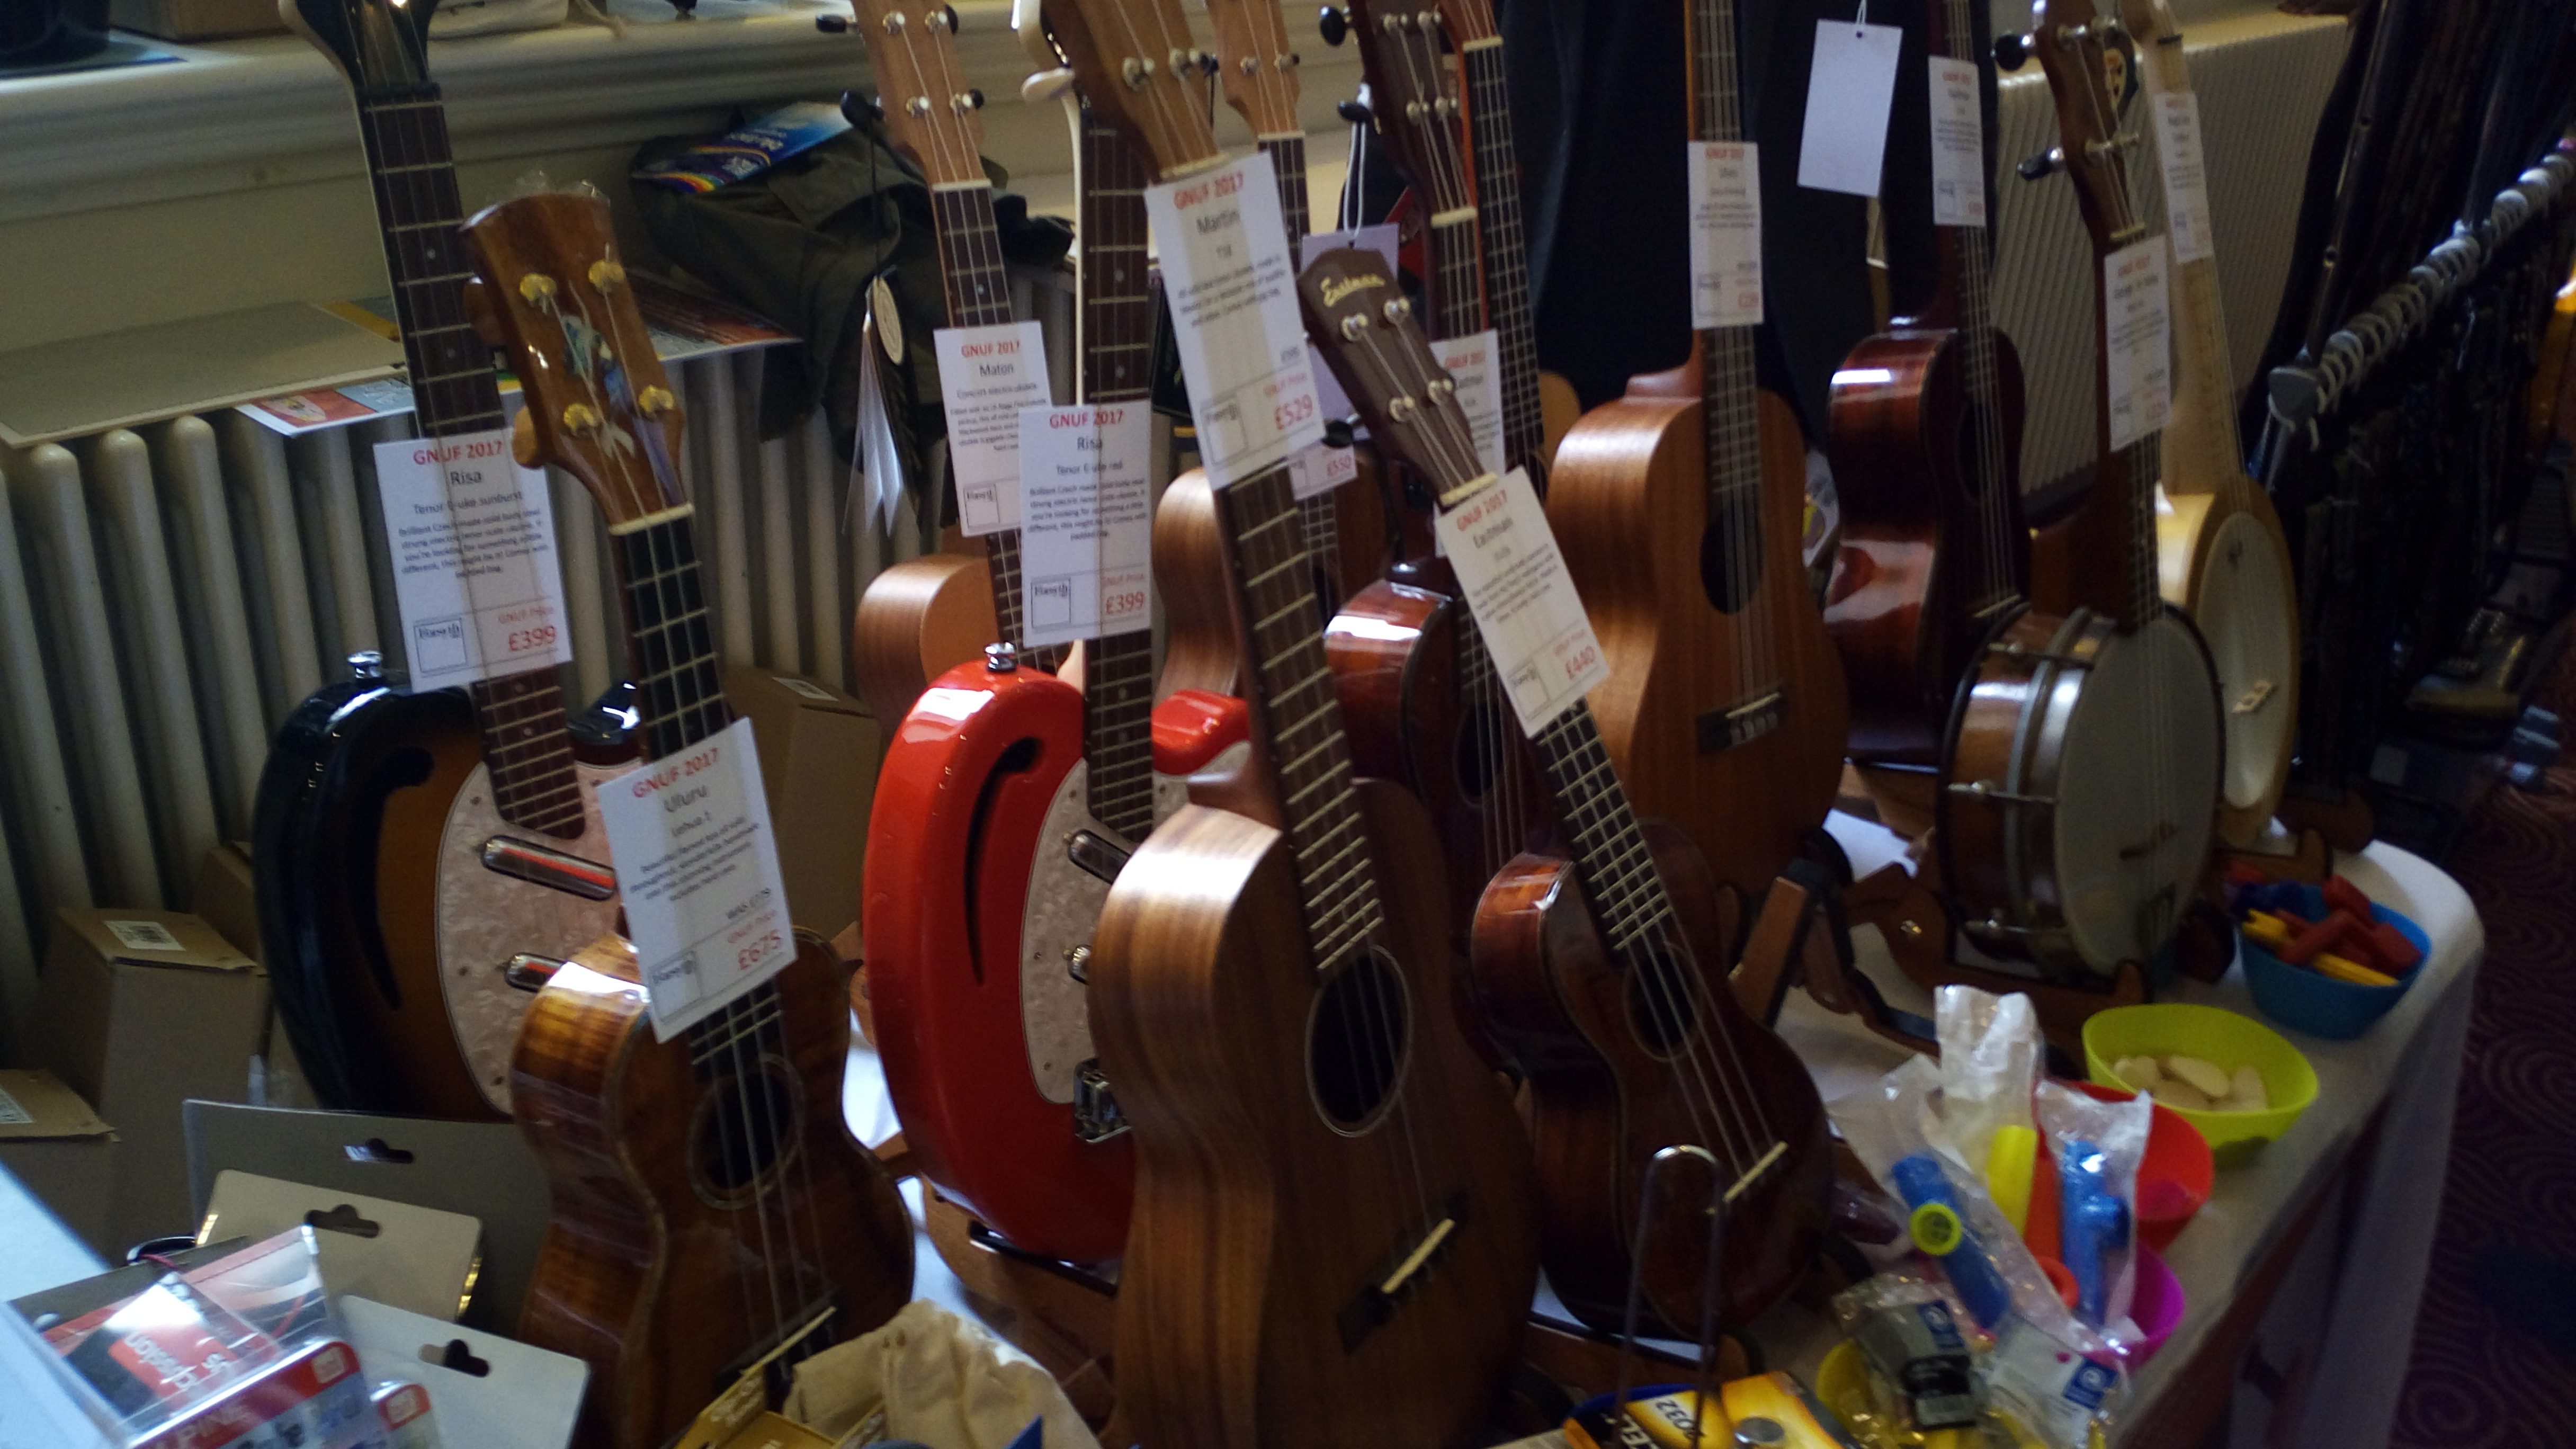 Hull ukulele group other stalls sold hangers to put your beloved uke on a wall straps to put your uke around your neck t shirts badges raffle tickets stickers hexwebz Images